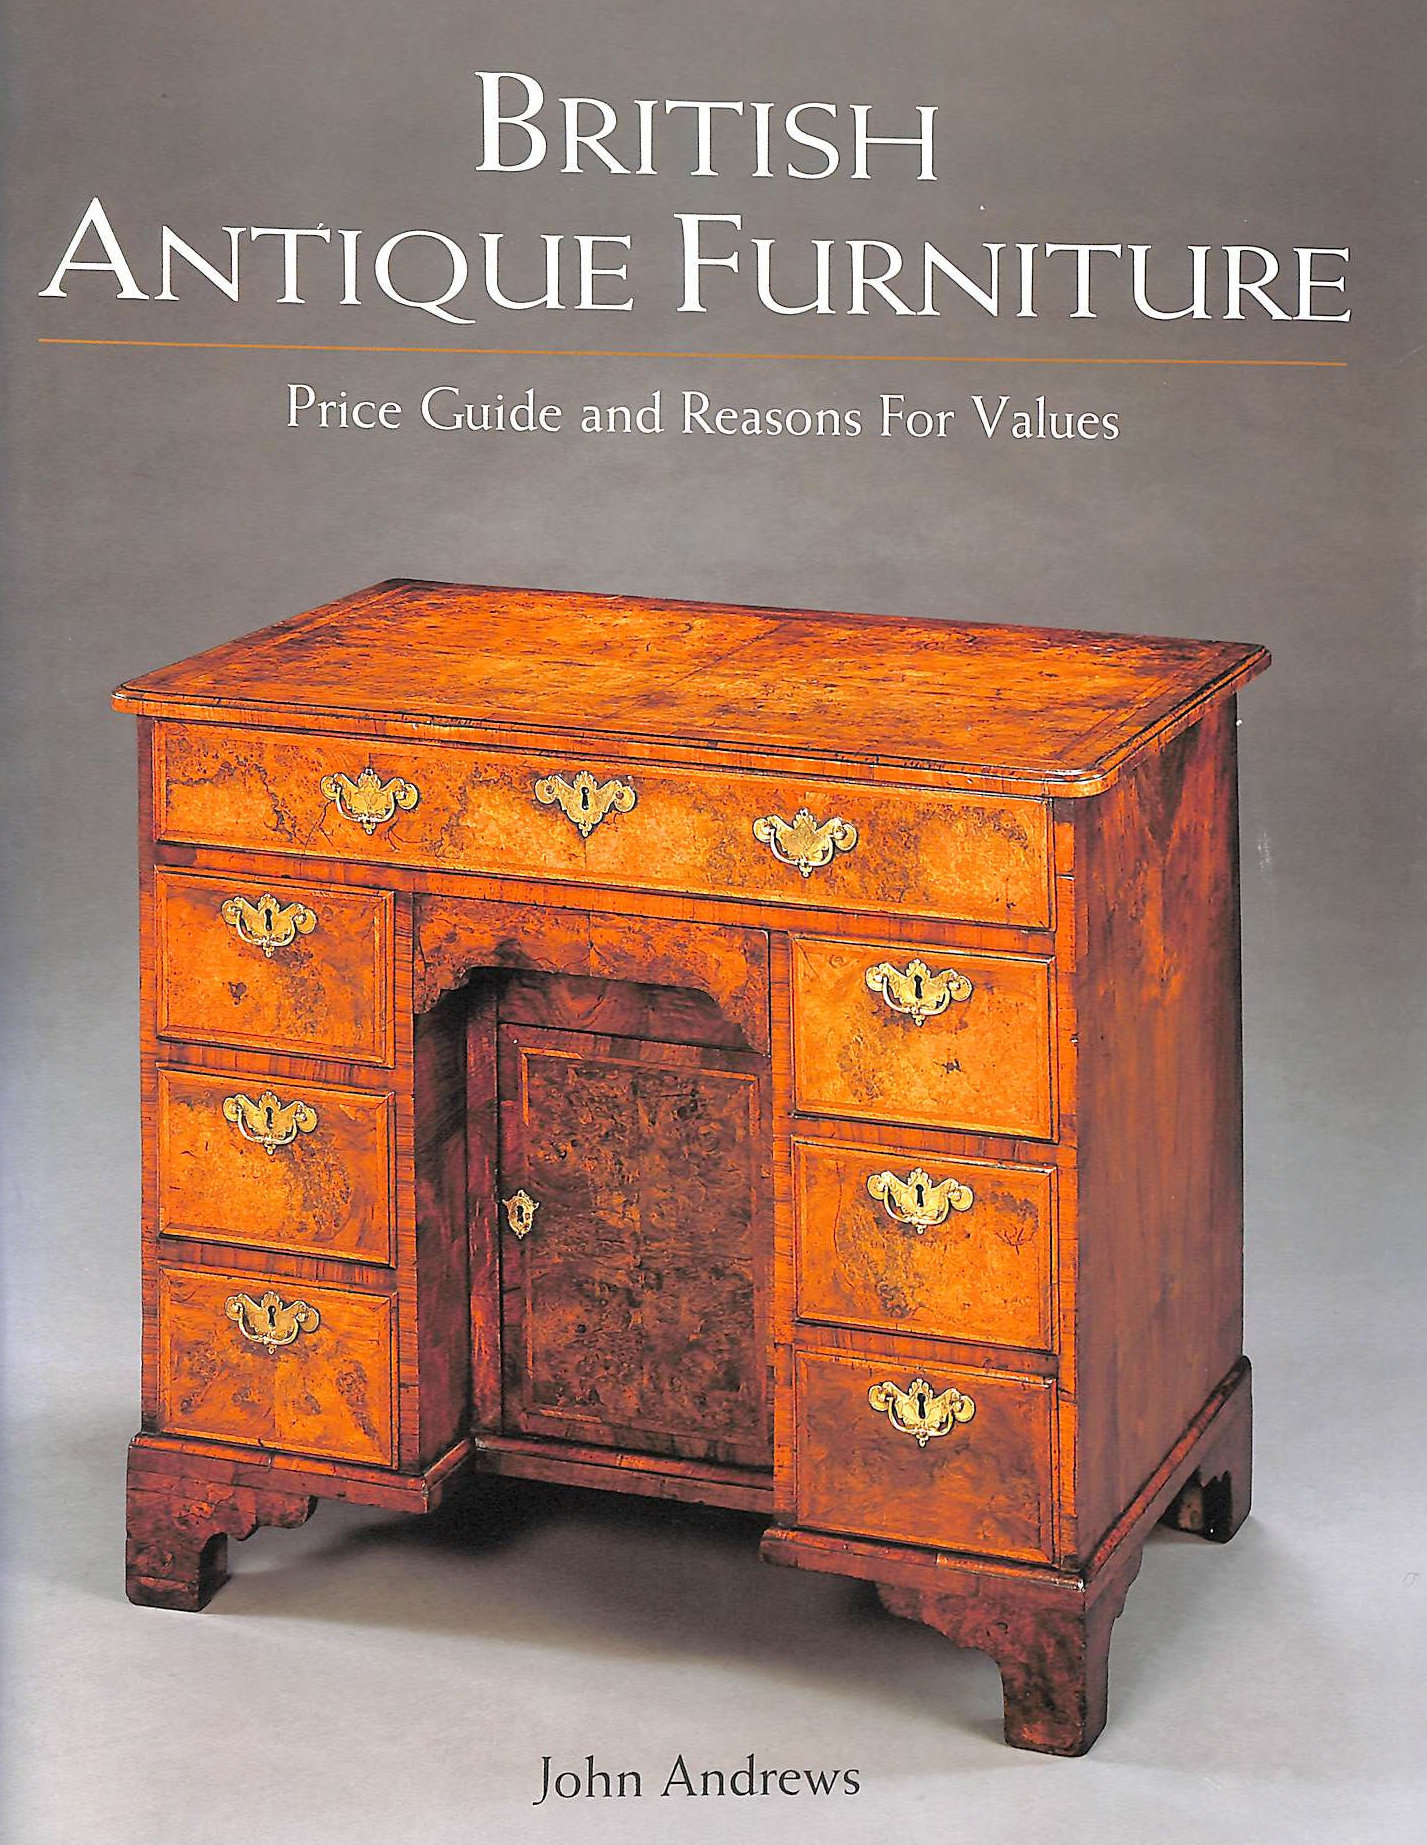 Image for British Antique Furniture 2001: Price Guide and Reasons for Values - British Antique Furniture 2001: Price Guide And Reasons For Values